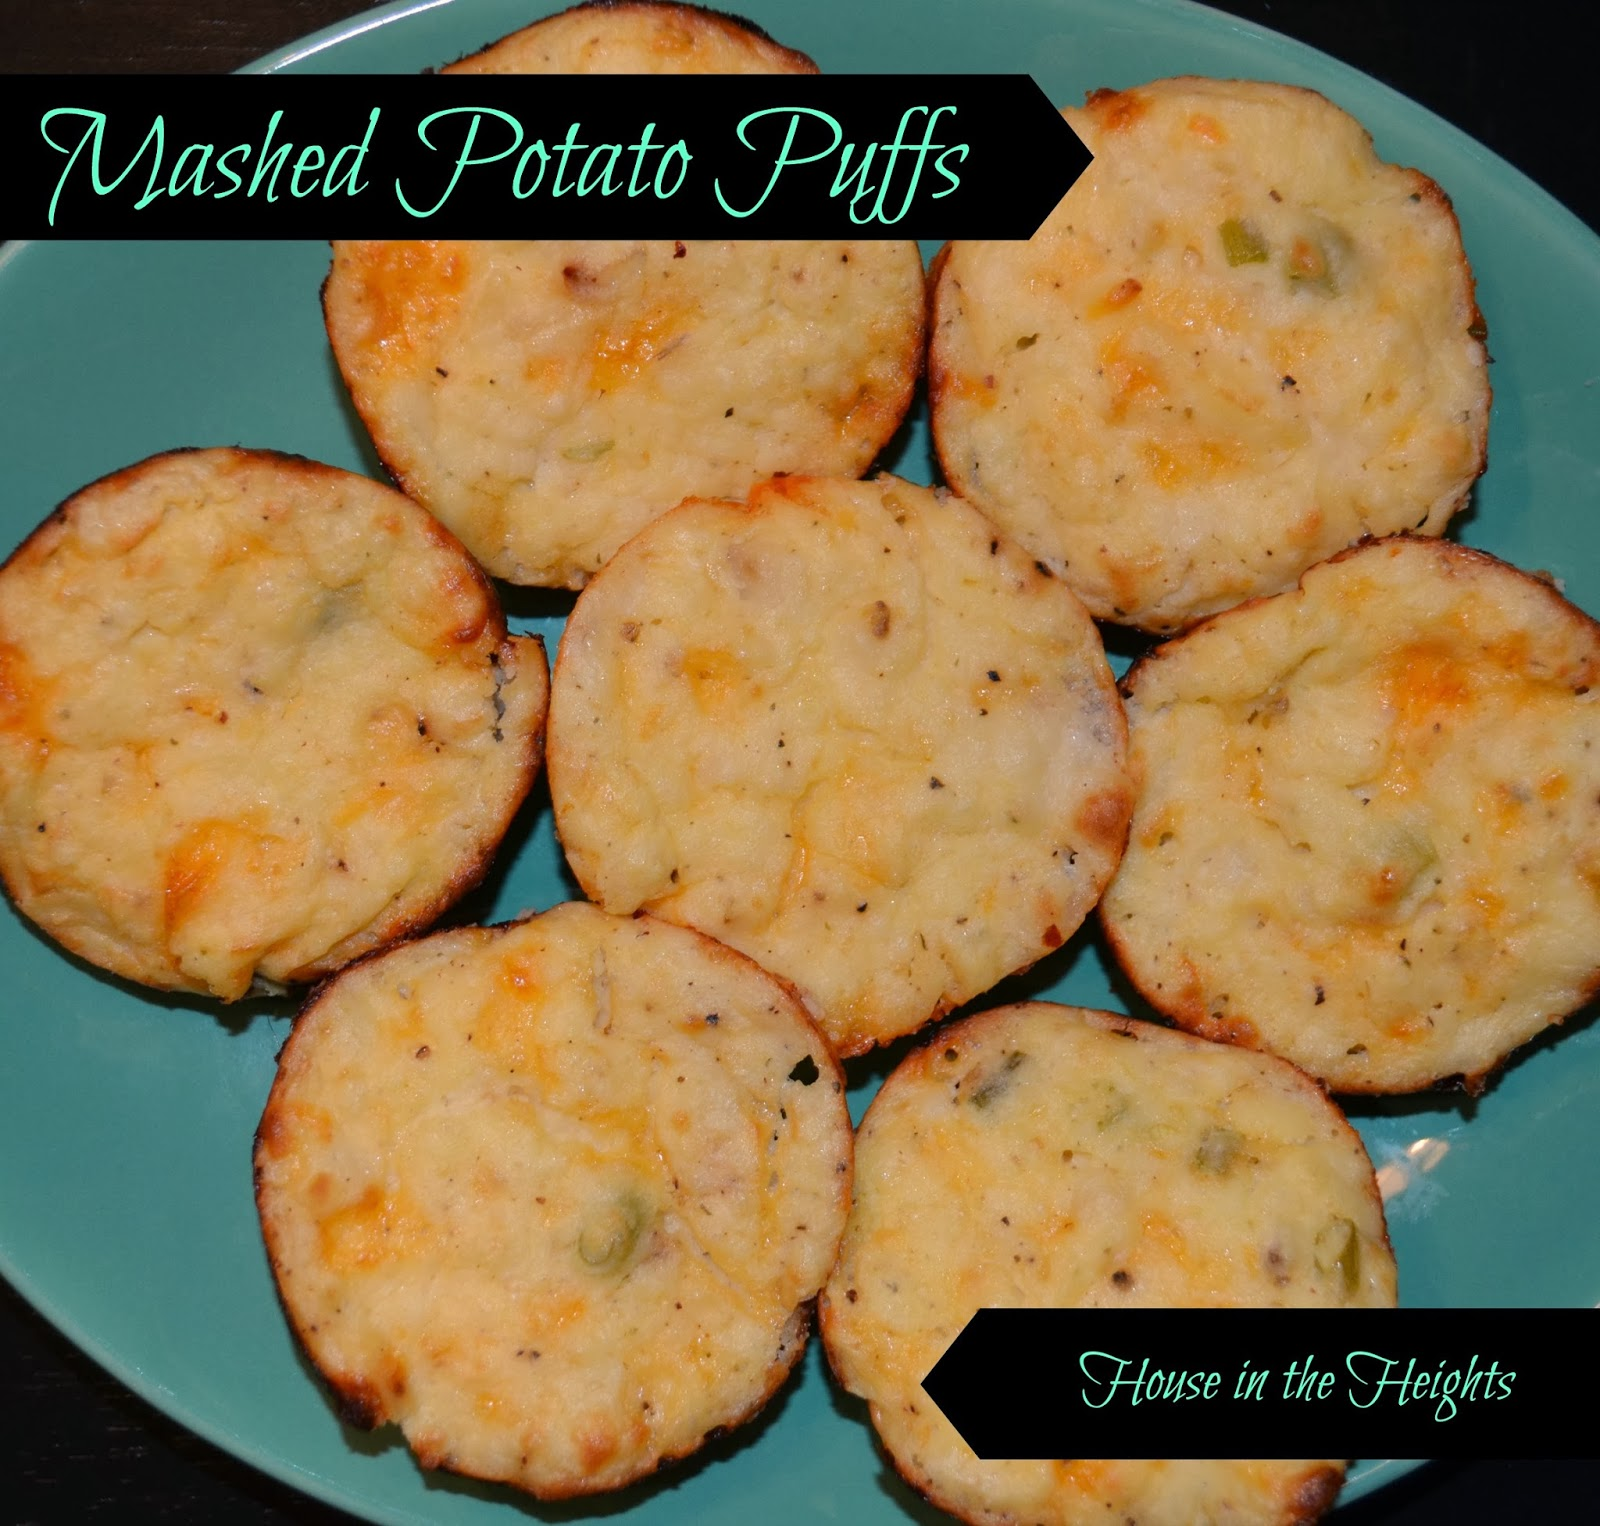 House in the Heights: What We Ate {Mashed Potato Puffs}